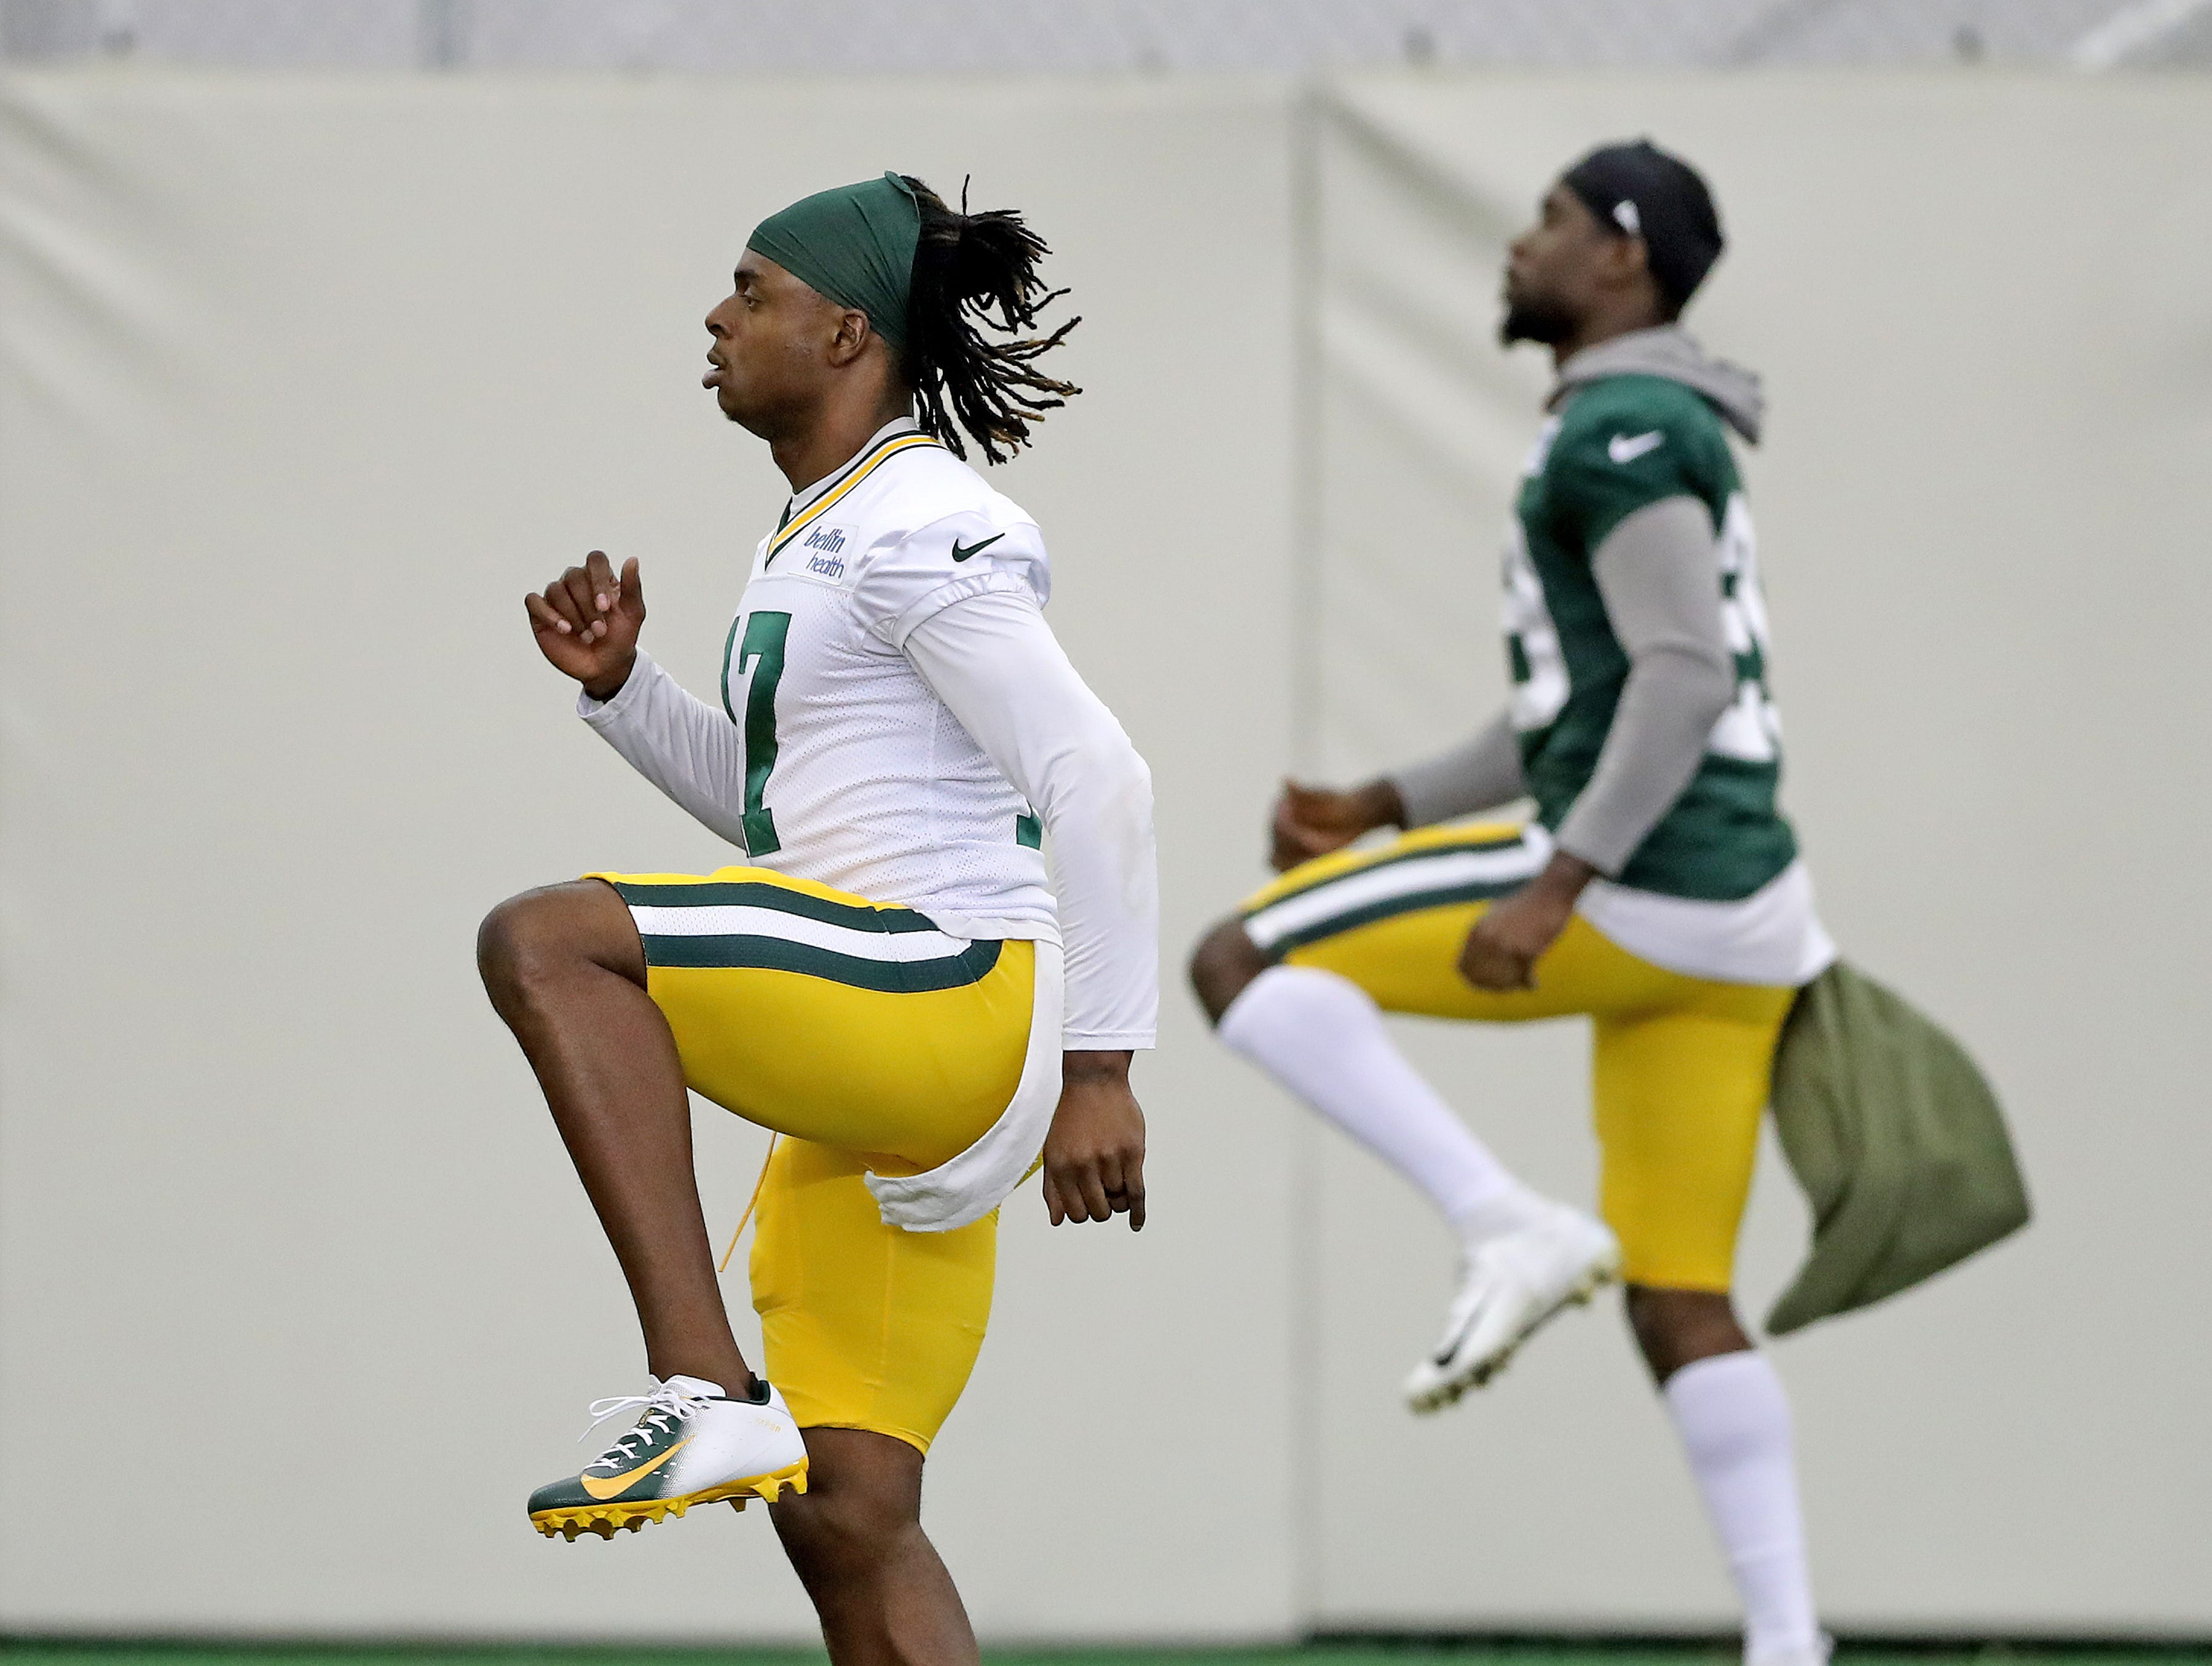 Green Bay Packers wide receiver Davante Adams (17) during Packers practice in the Don Hutson Center Monday, September 3, 2018 in Ashwaubenon, Wis